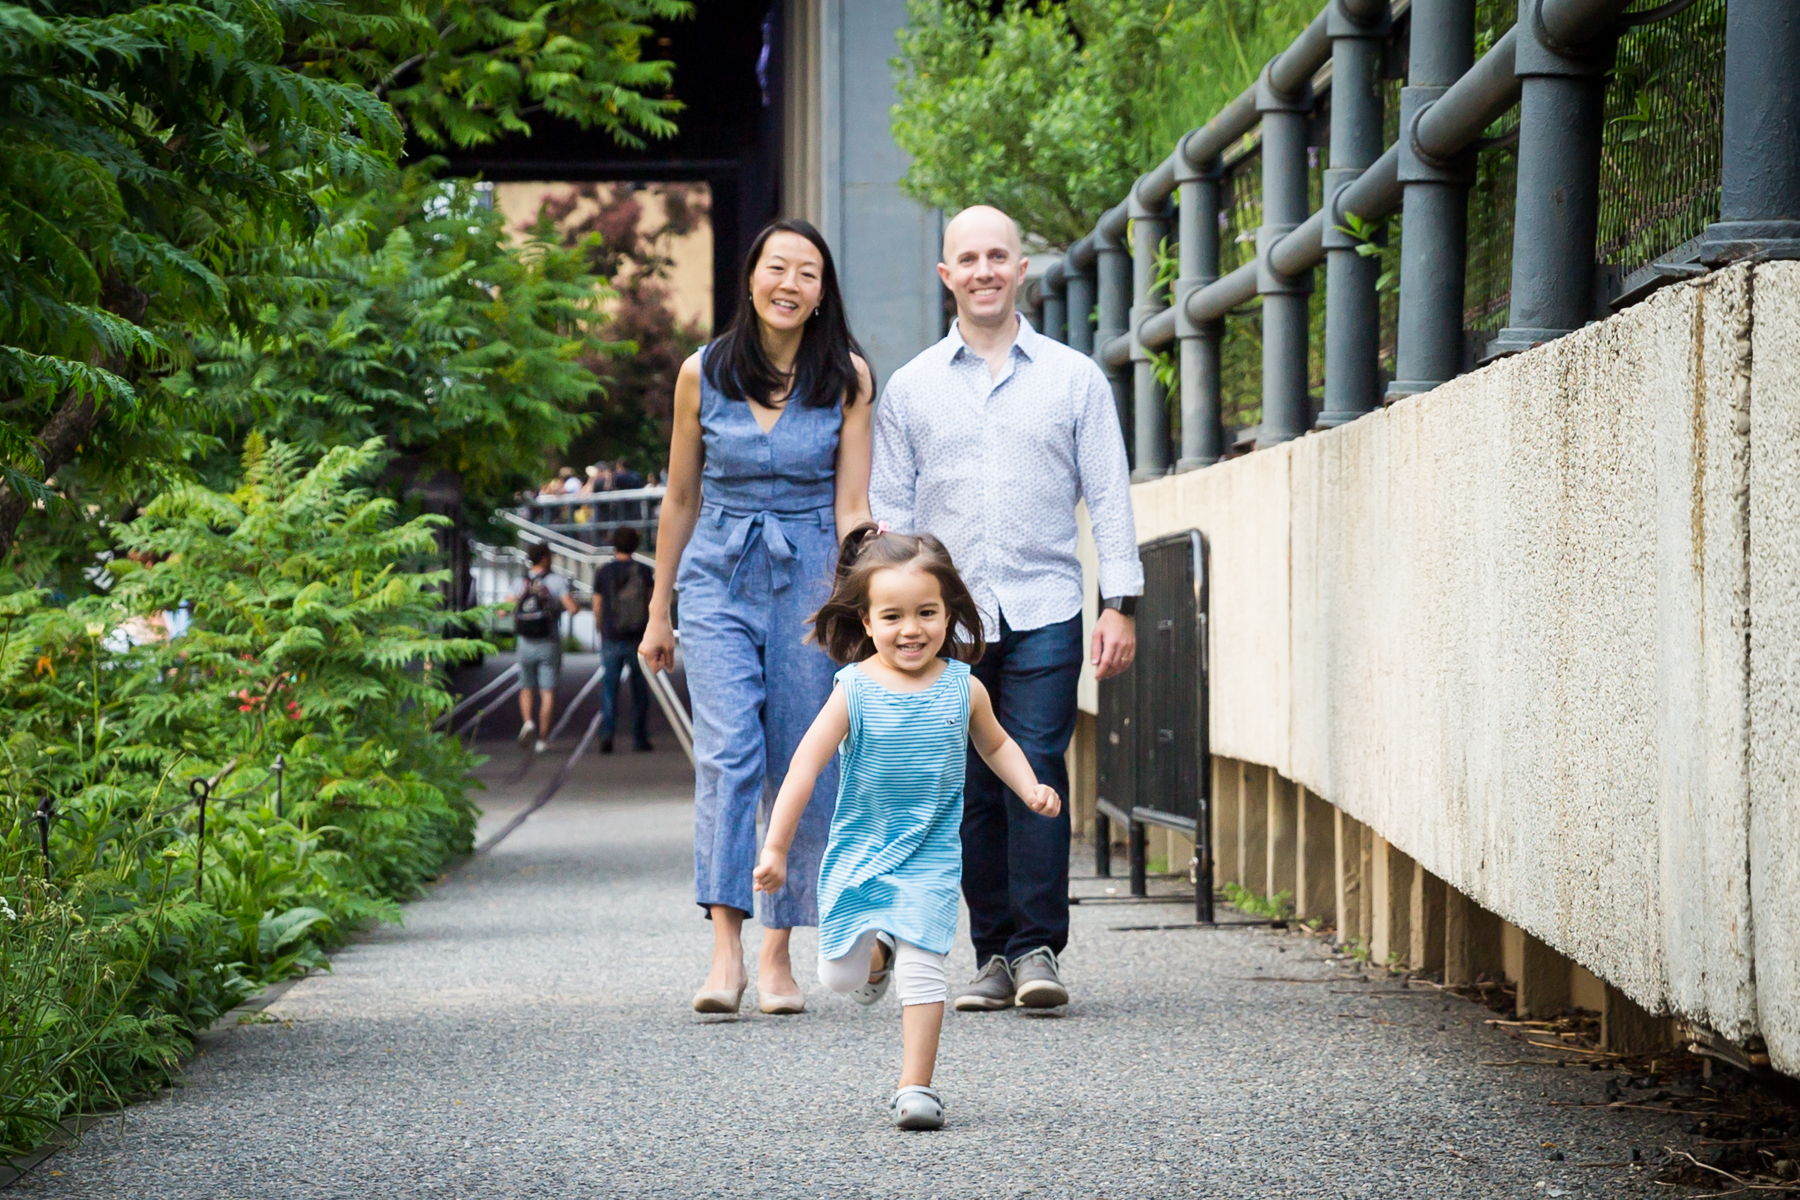 Little girl running for an article on High Line family portrait tips